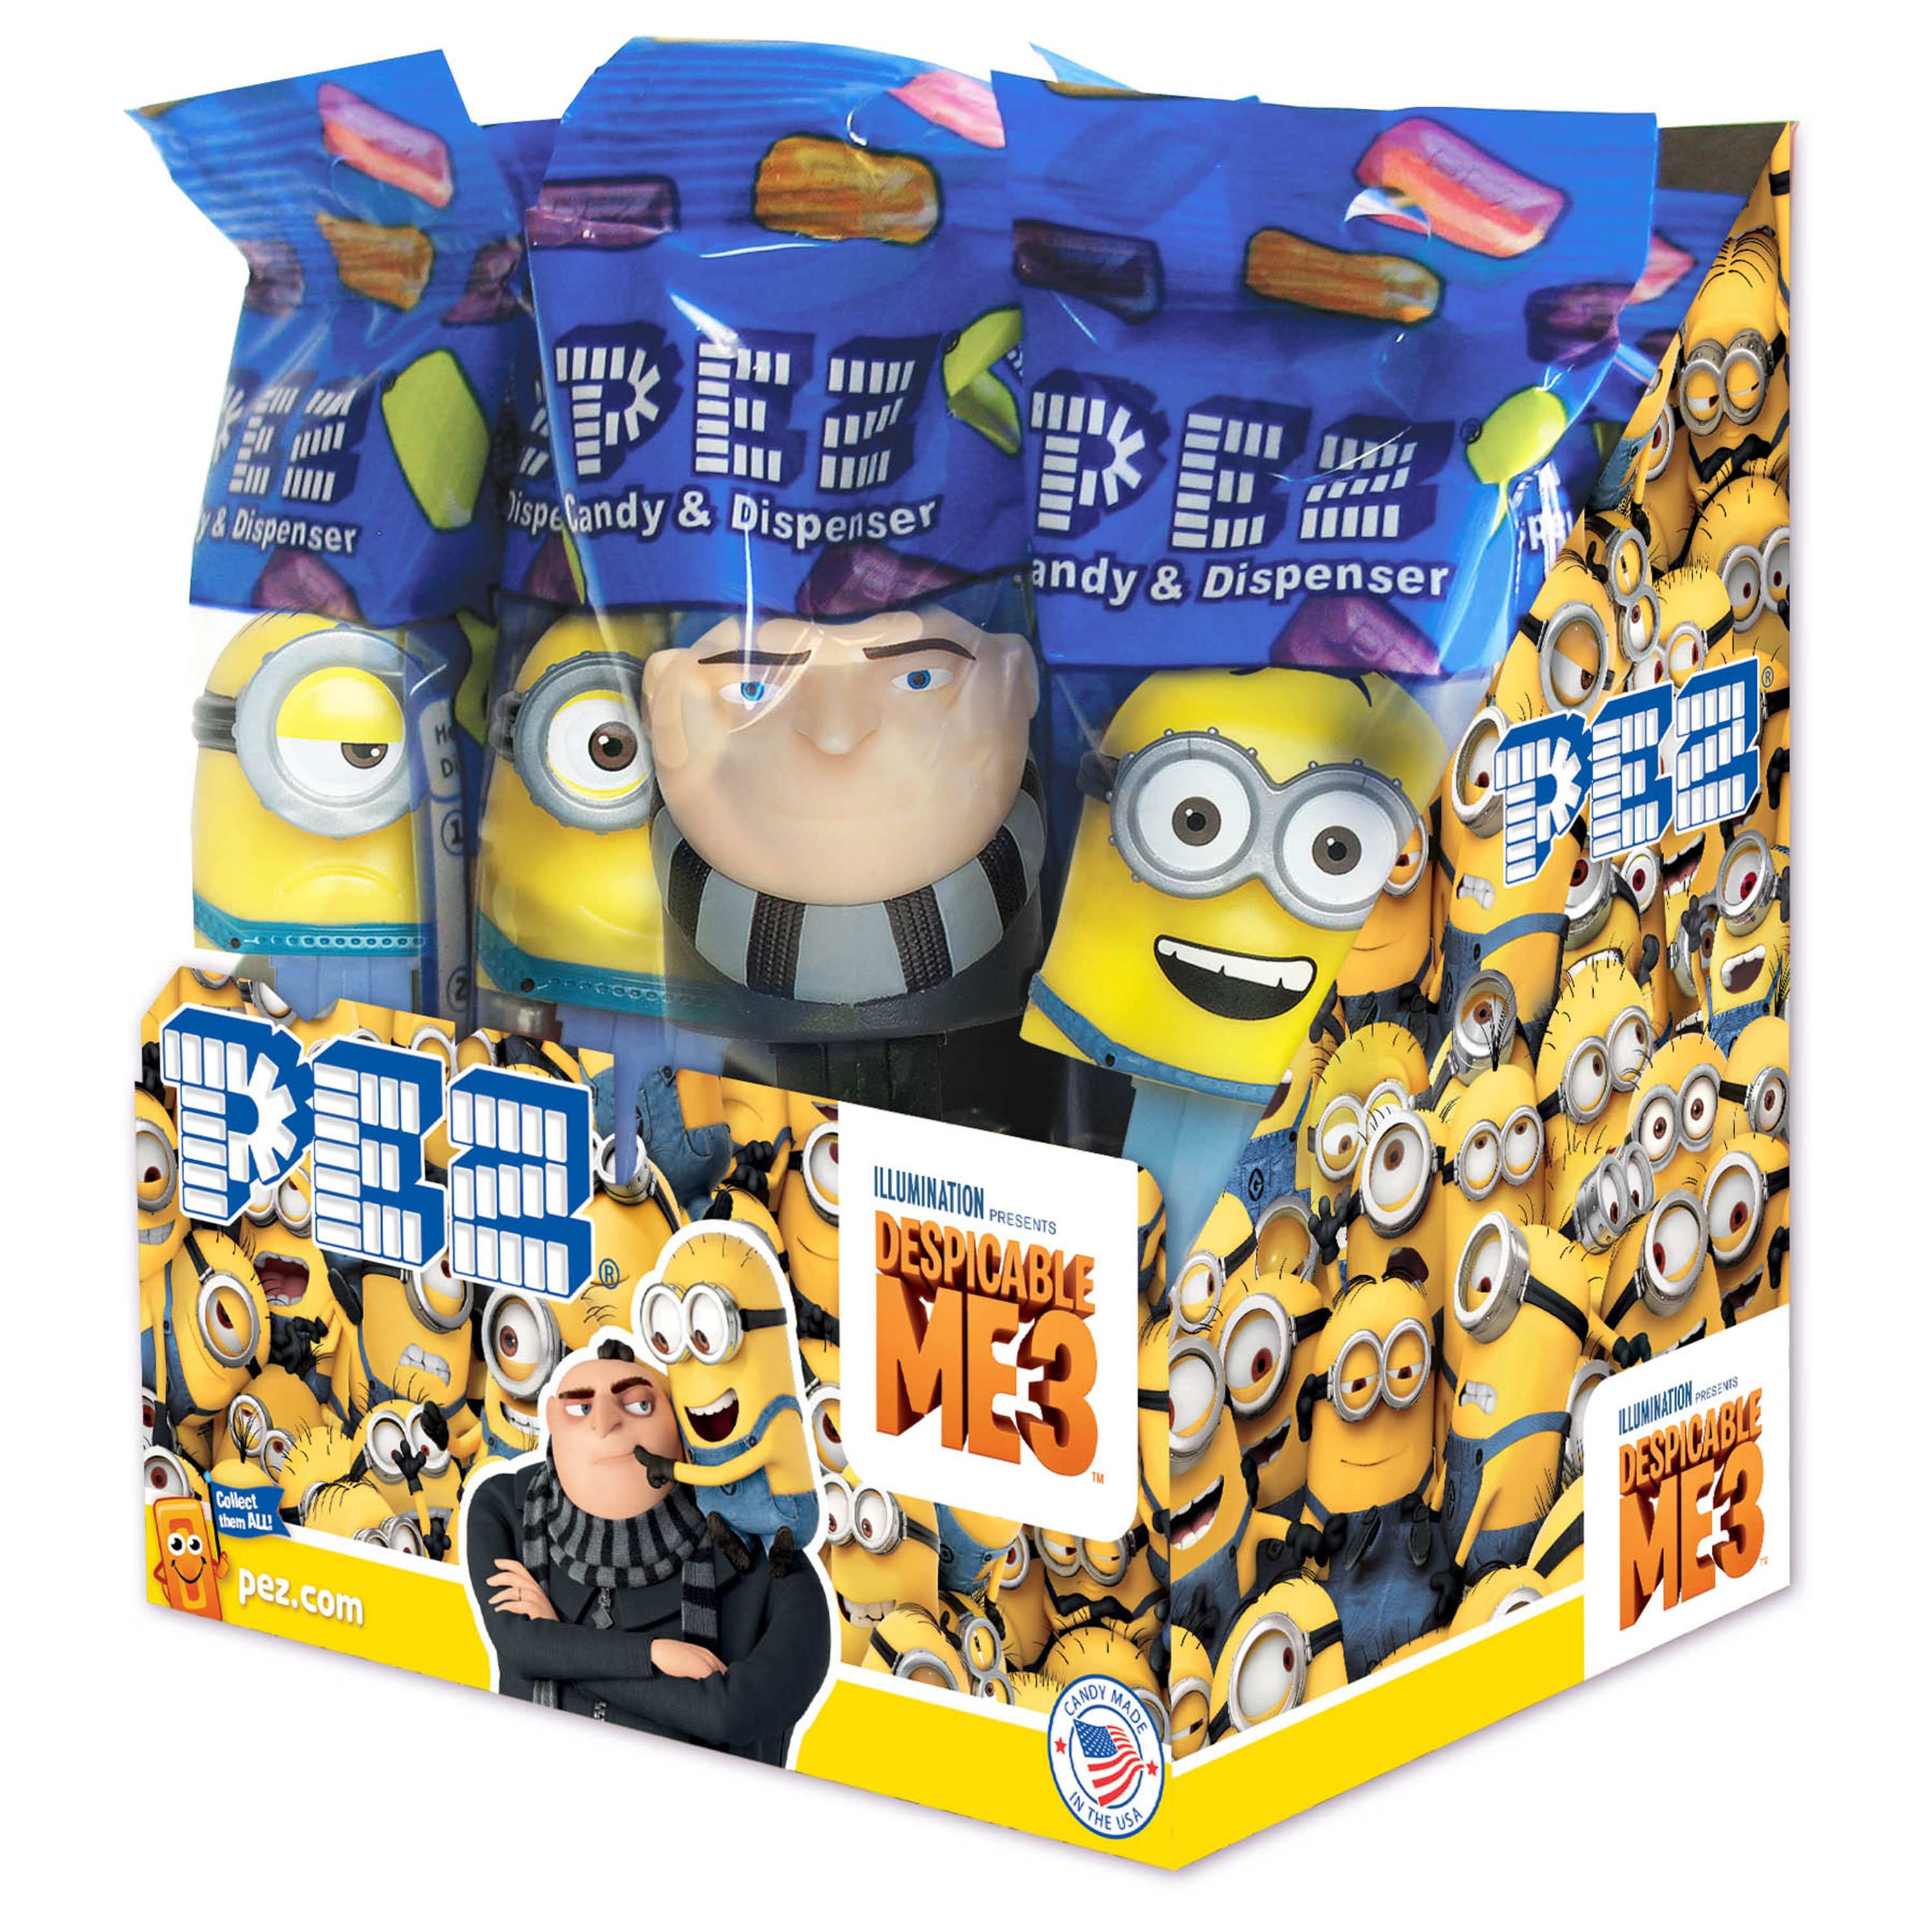 PEZ Candy Despicable Me 3 Assortment, candy dispenser plus 2 rolls of assorted fruit candy, box of 12